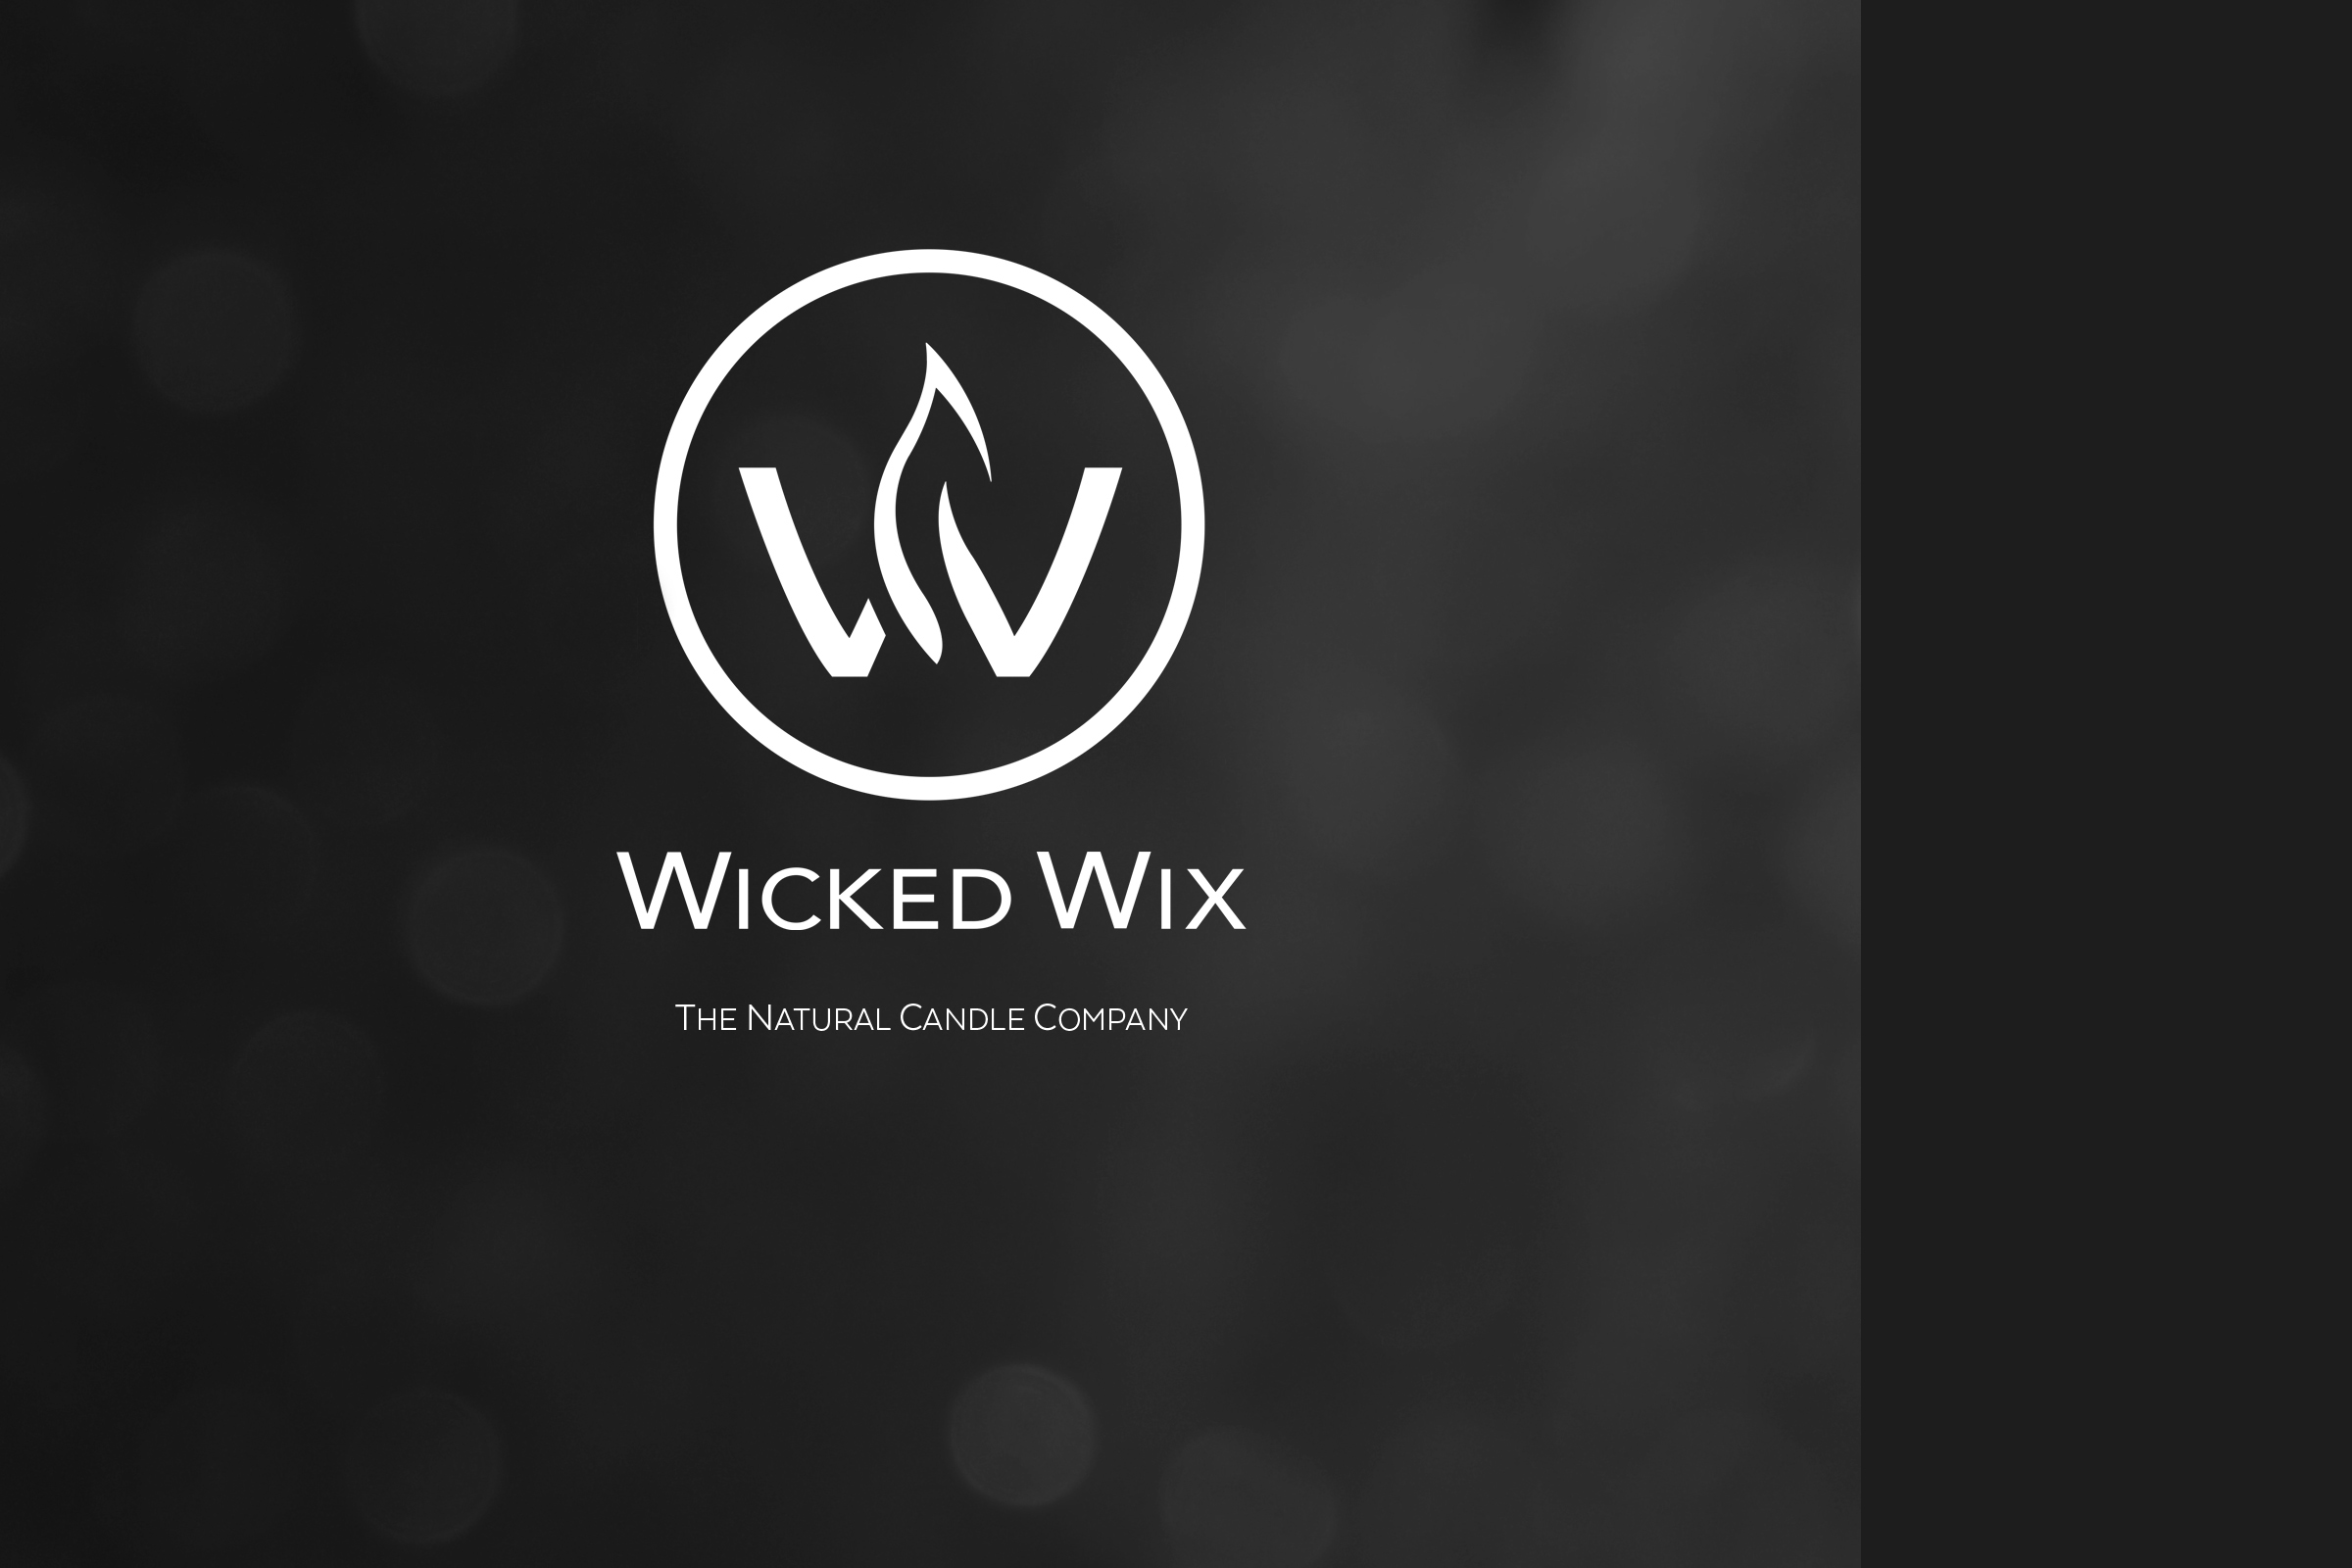 Wicked Wix